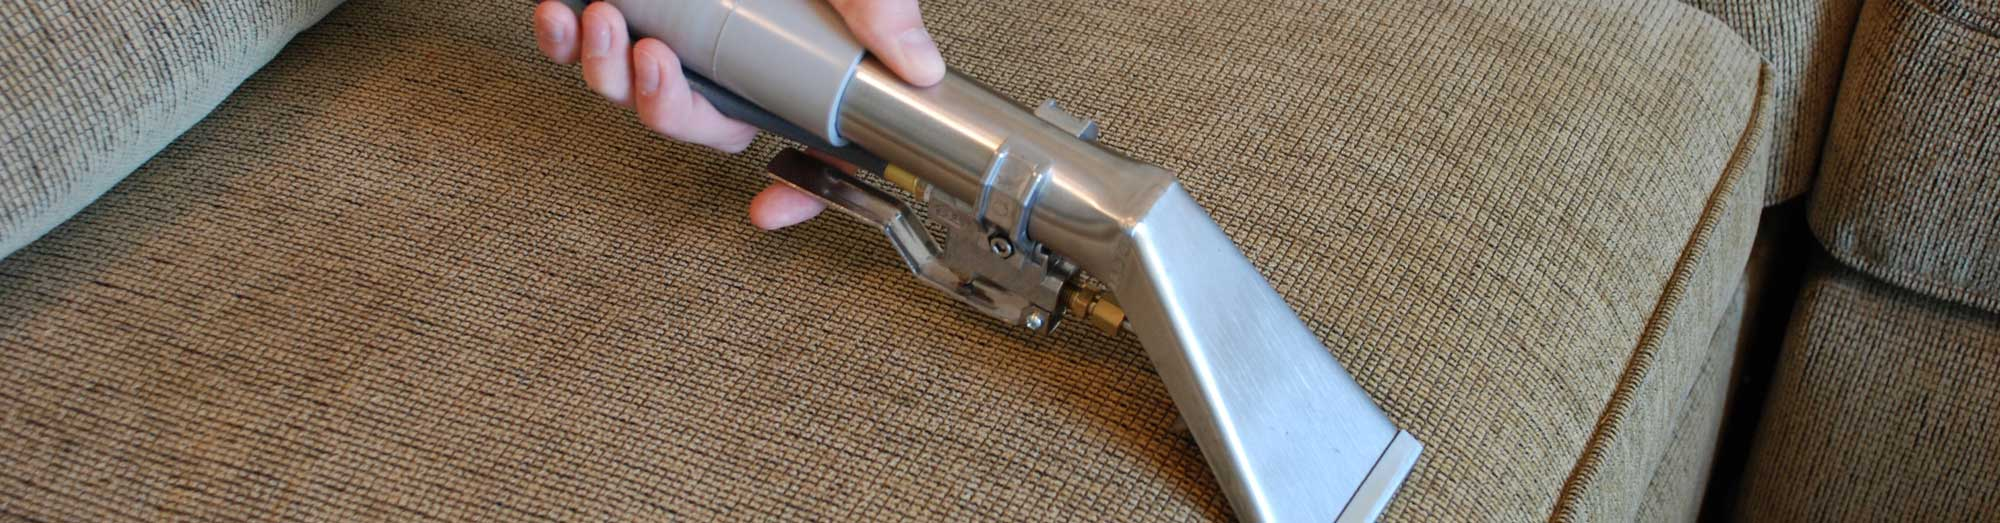 Upholstery-Cleaning   Generations Carpet Cleaning